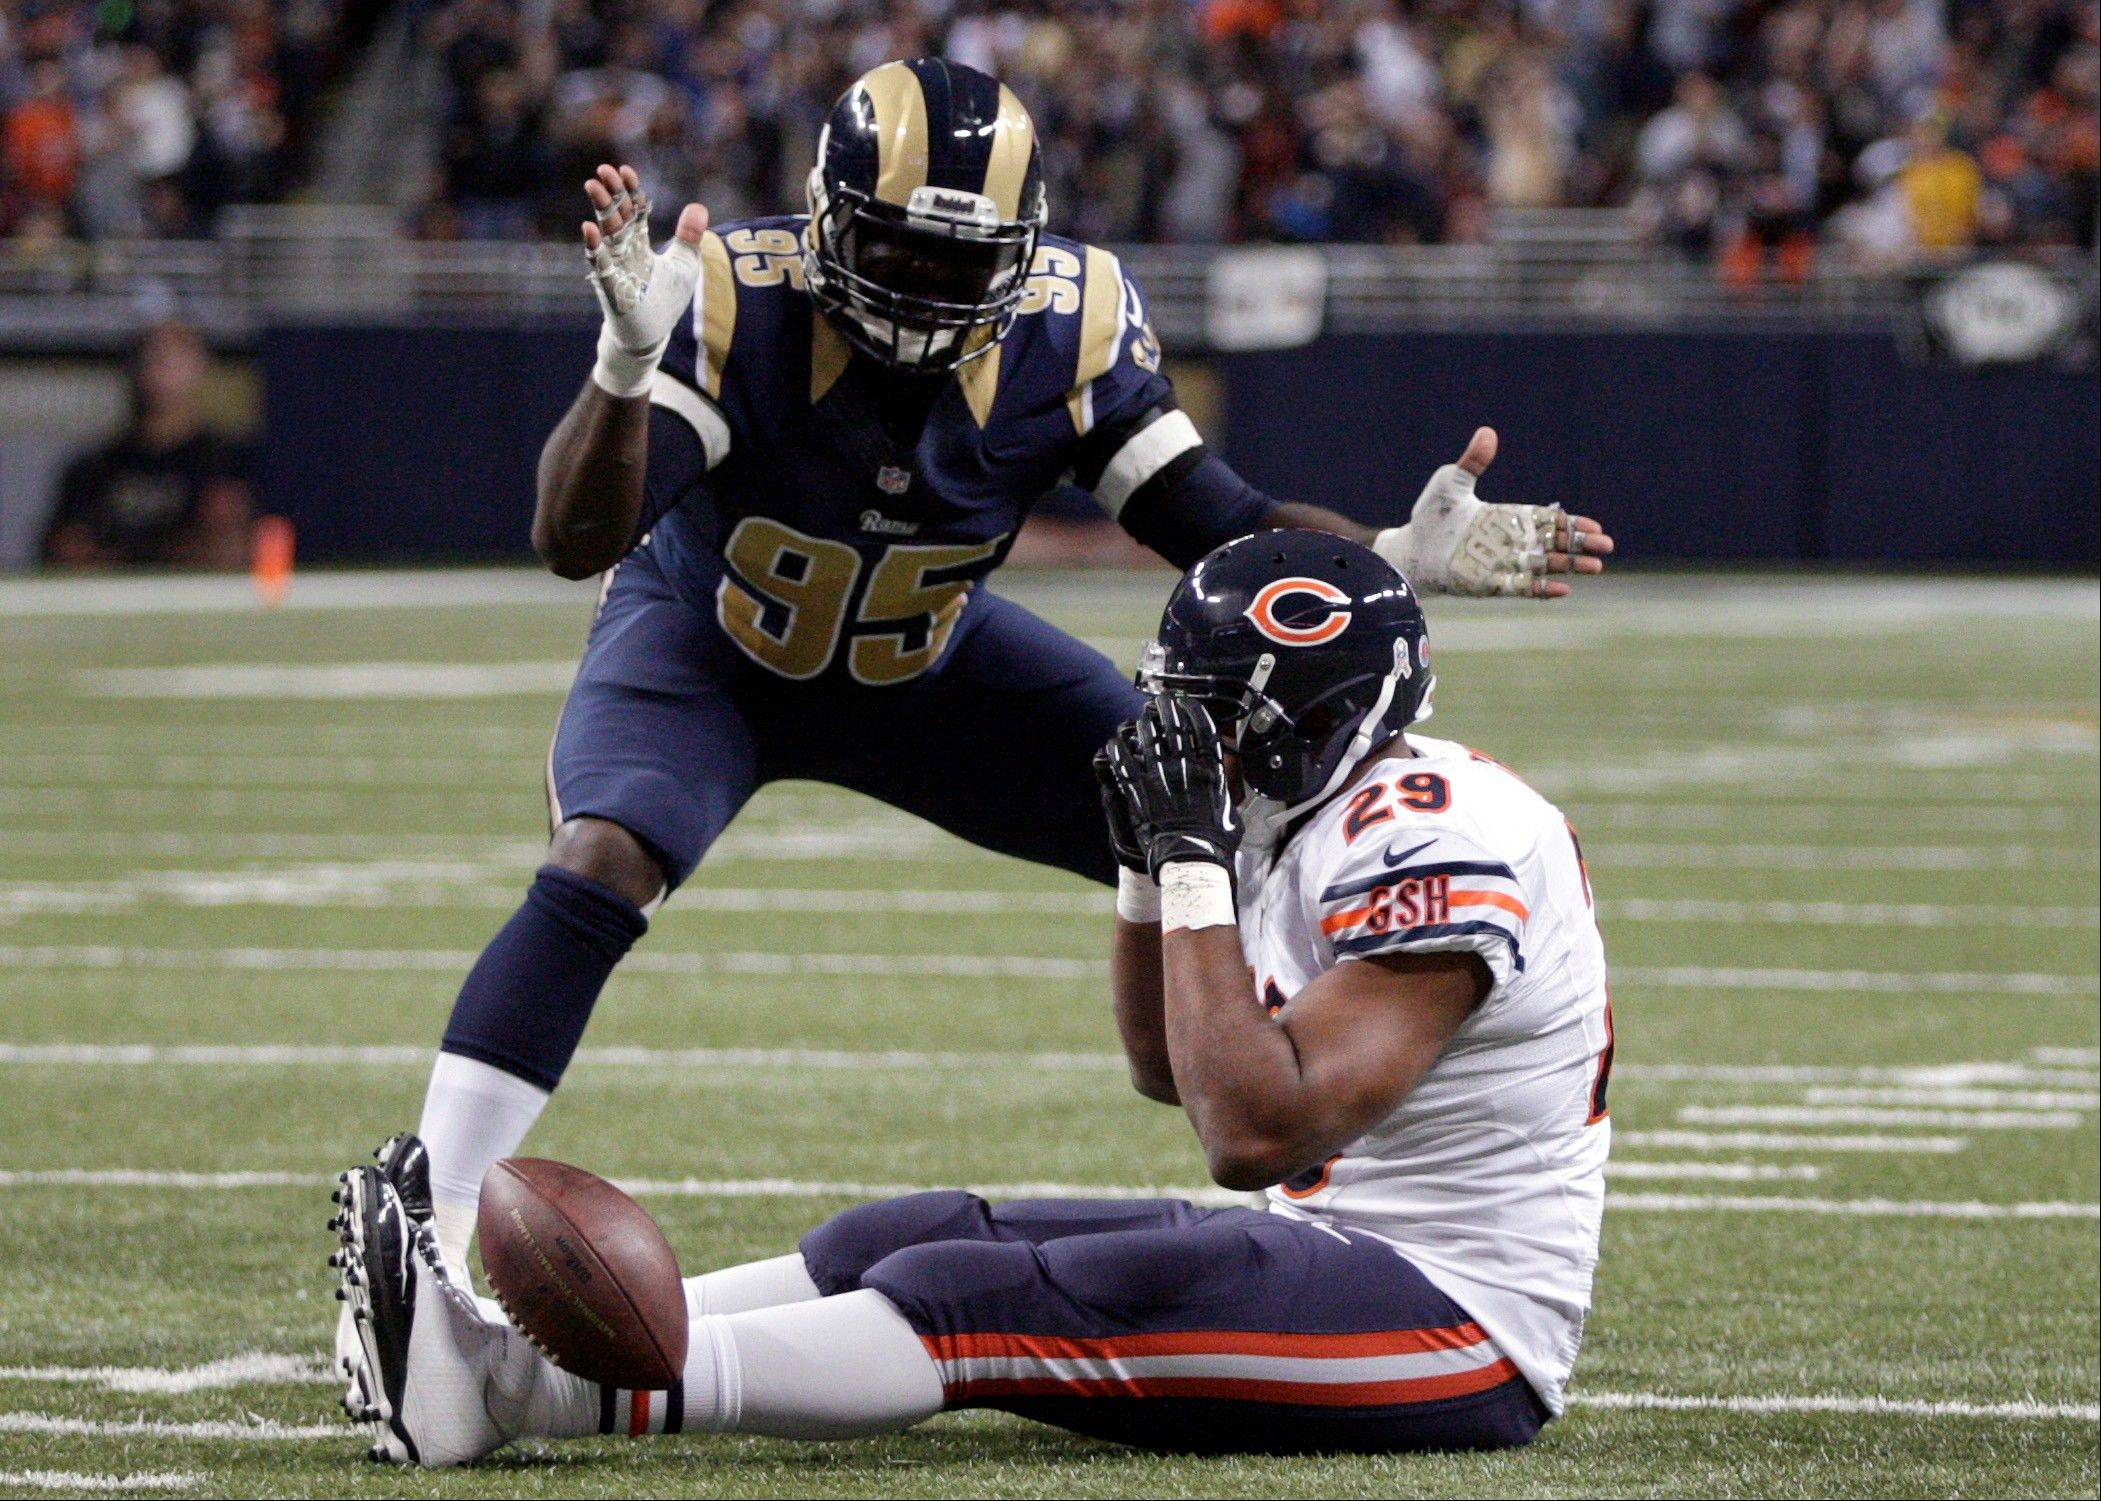 St. Louis Rams defensive end William Hayes, top, applauds after Chicago Bears running back Michael Bush (29) was stopped short of the end zone for a 4-yard loss on fourth down during the third quarter.